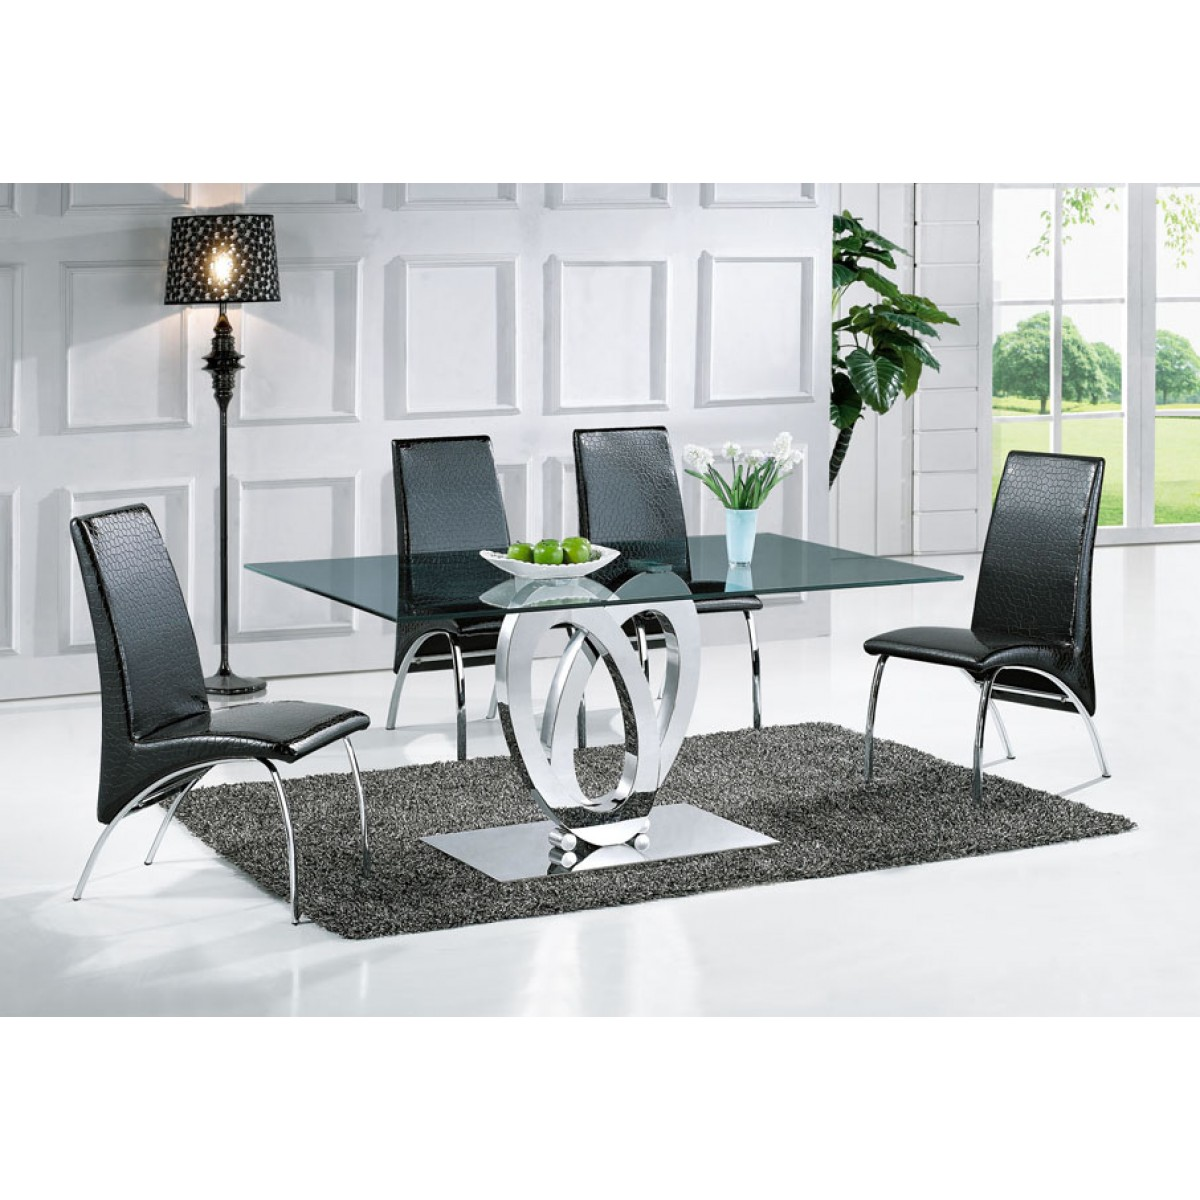 Table manger design ellipse taille au choix tables for Table a salle a manger design